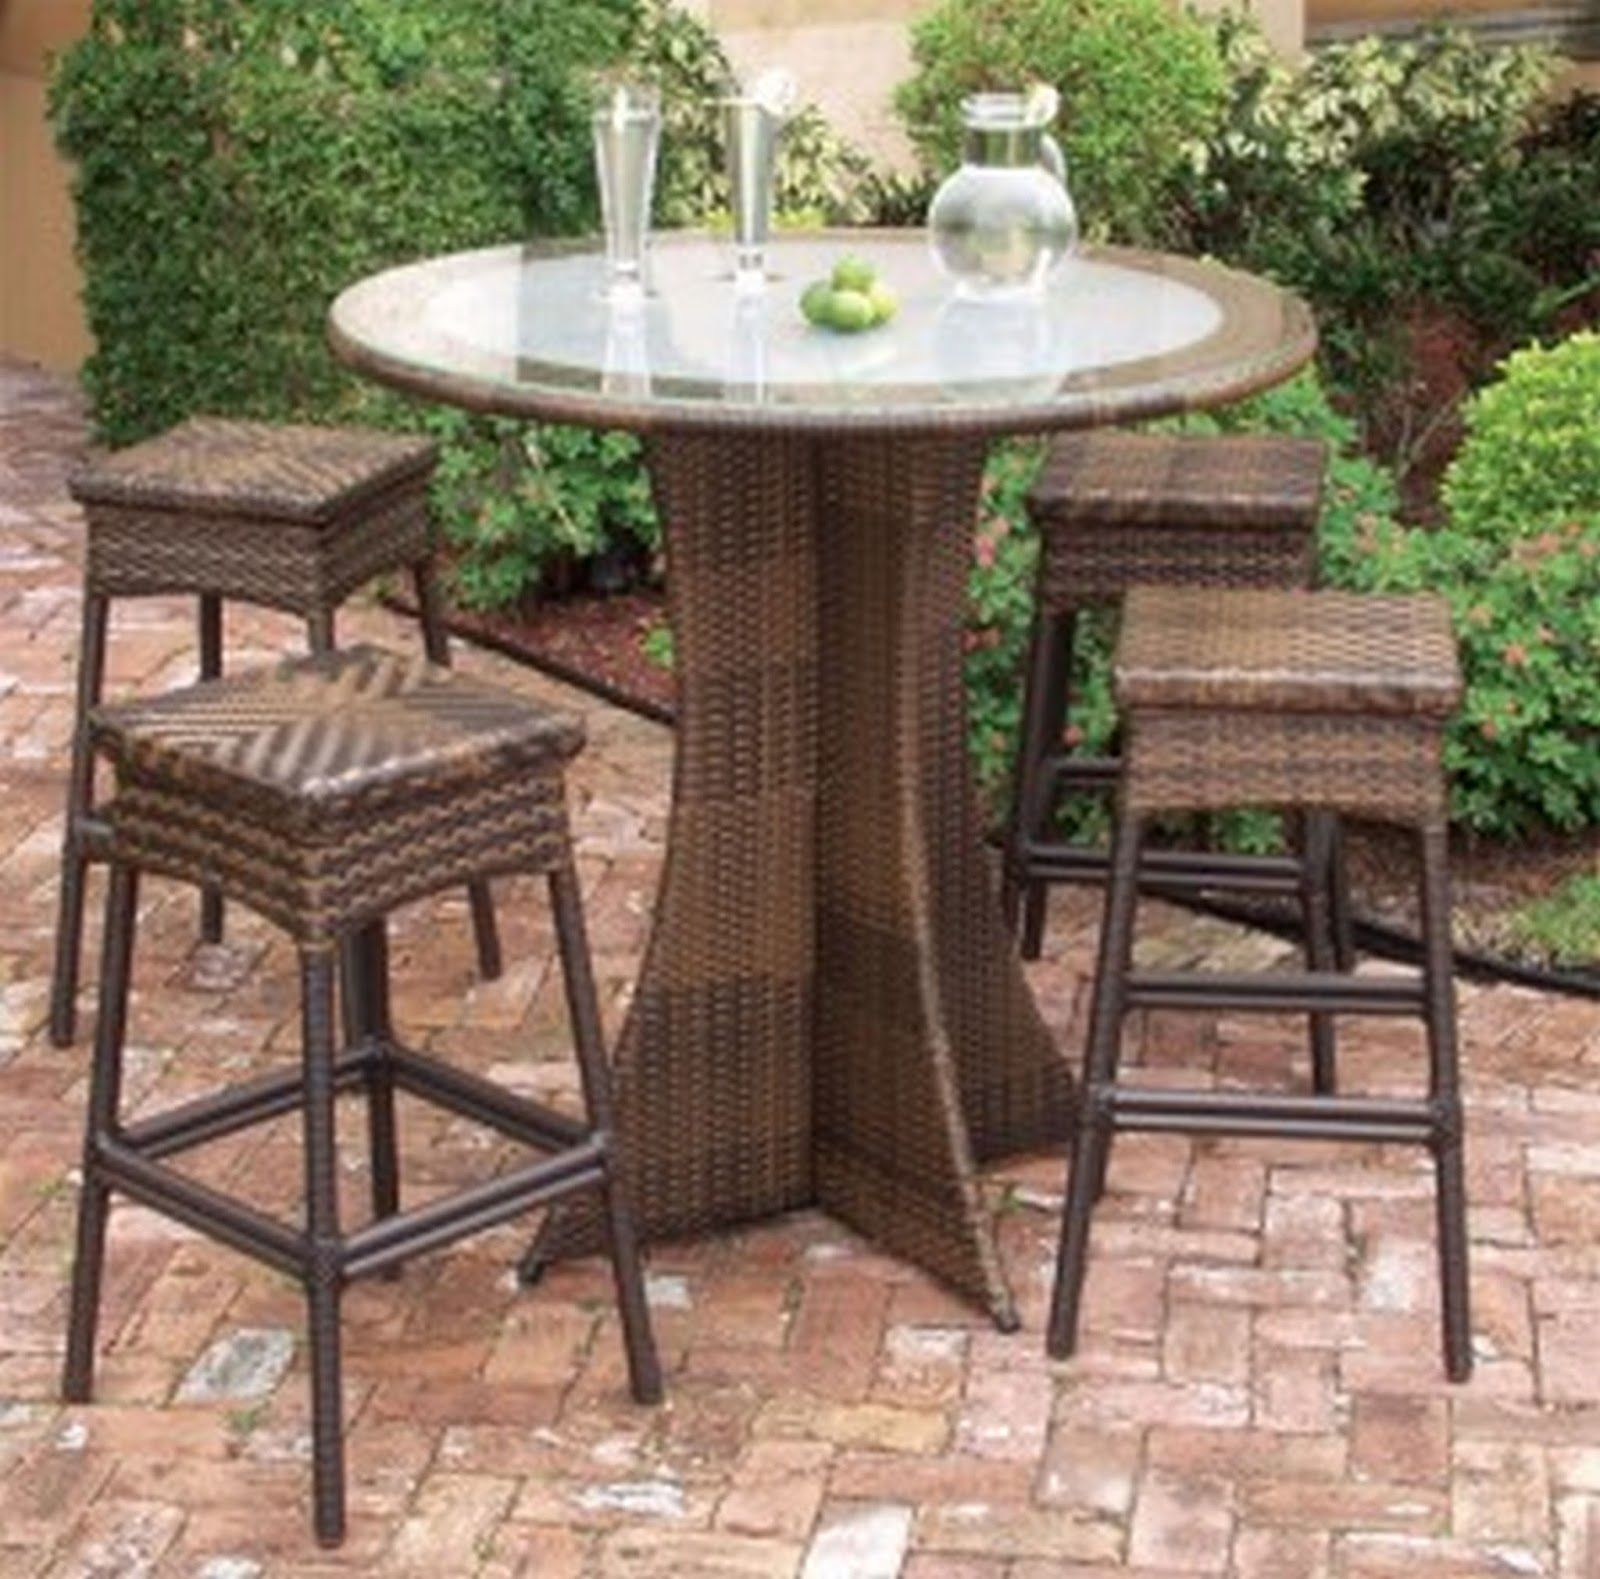 5 Classy Outdoor Coffee Table Ideas Luhomes Round Metal An Exotic Brown Rattan Plait With Classic Leg And Four Wicker Chairs Surrounding It Be Cover 30   ...